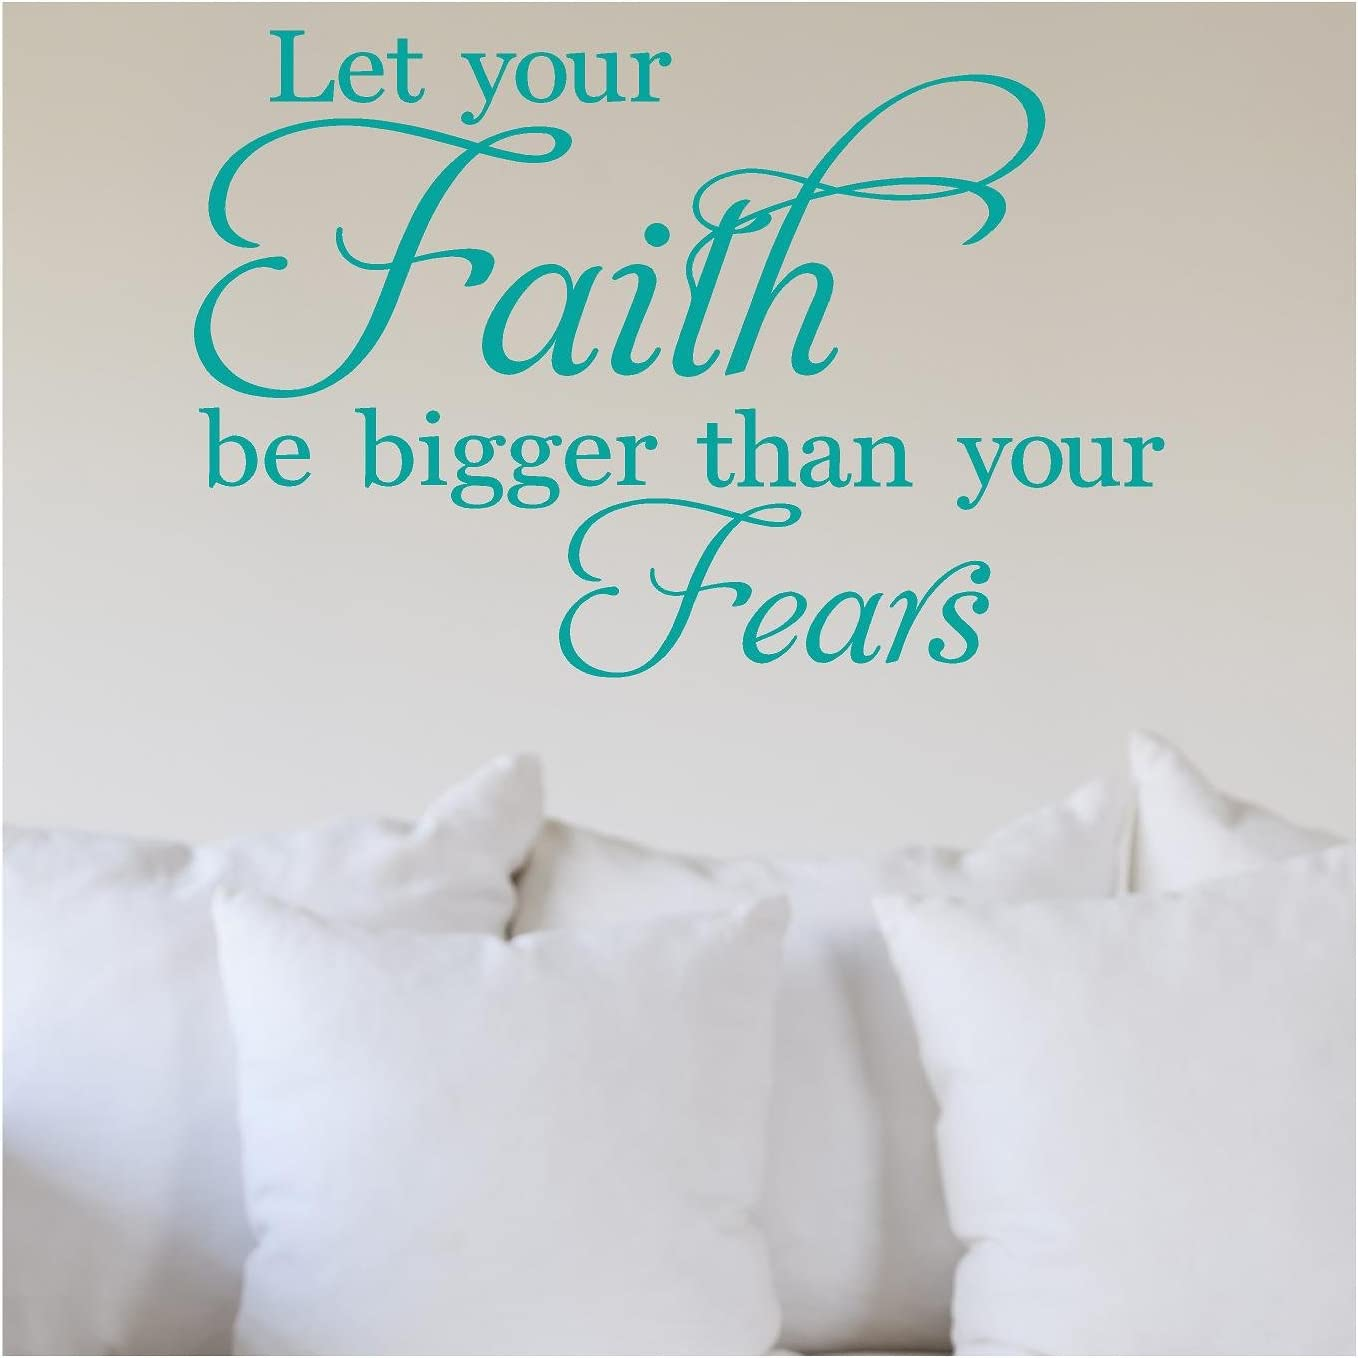 "Let Your Faith Be Bigger Than Your Fears Vinyl Lettering Wall Decal Stickers (12.5"" H x 16.5"" W, Turquoise)"